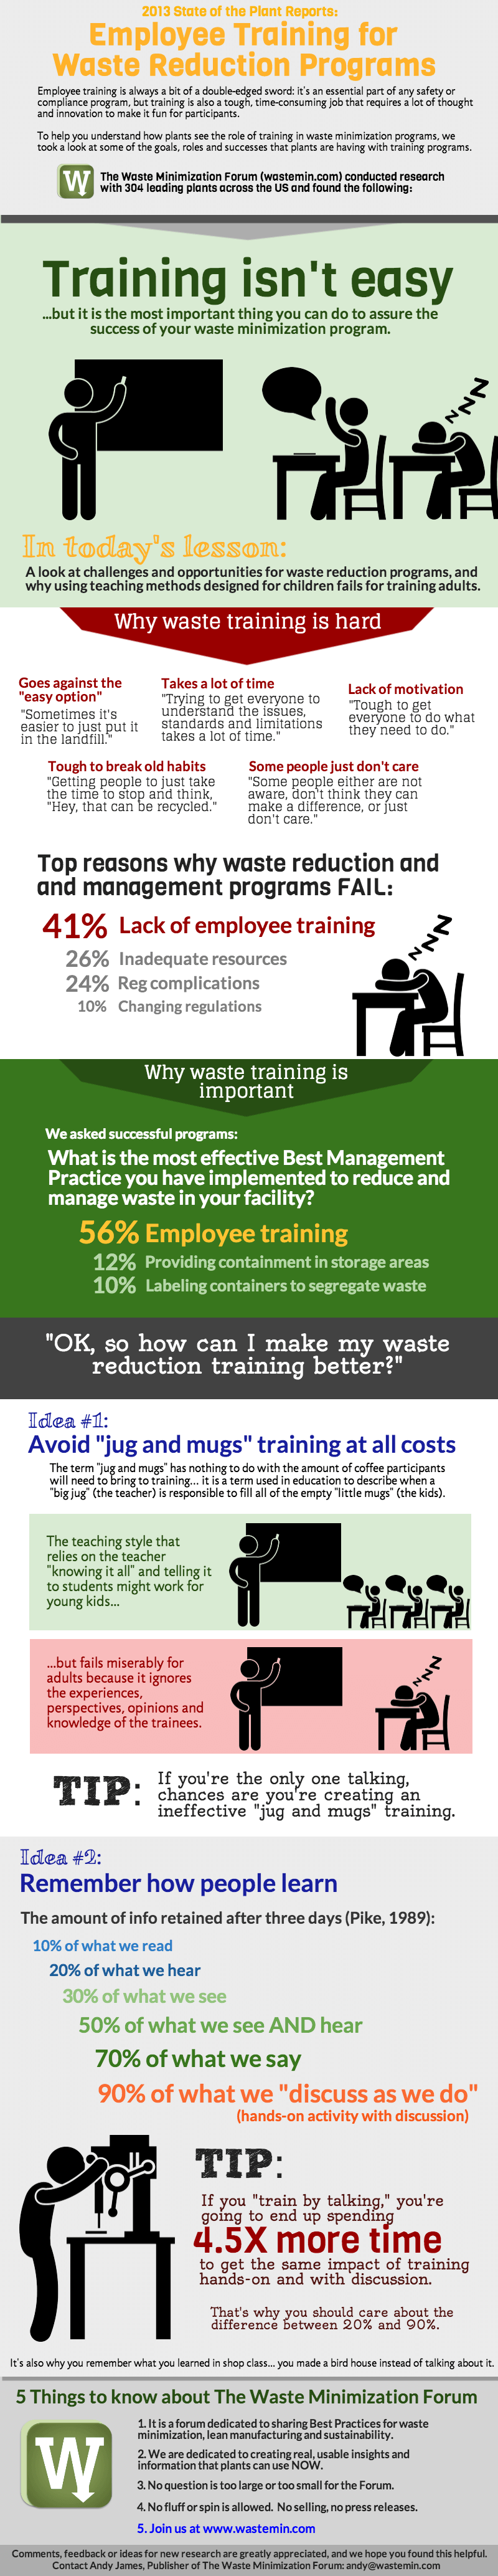 Employee training for waste reduction programs infographic.png